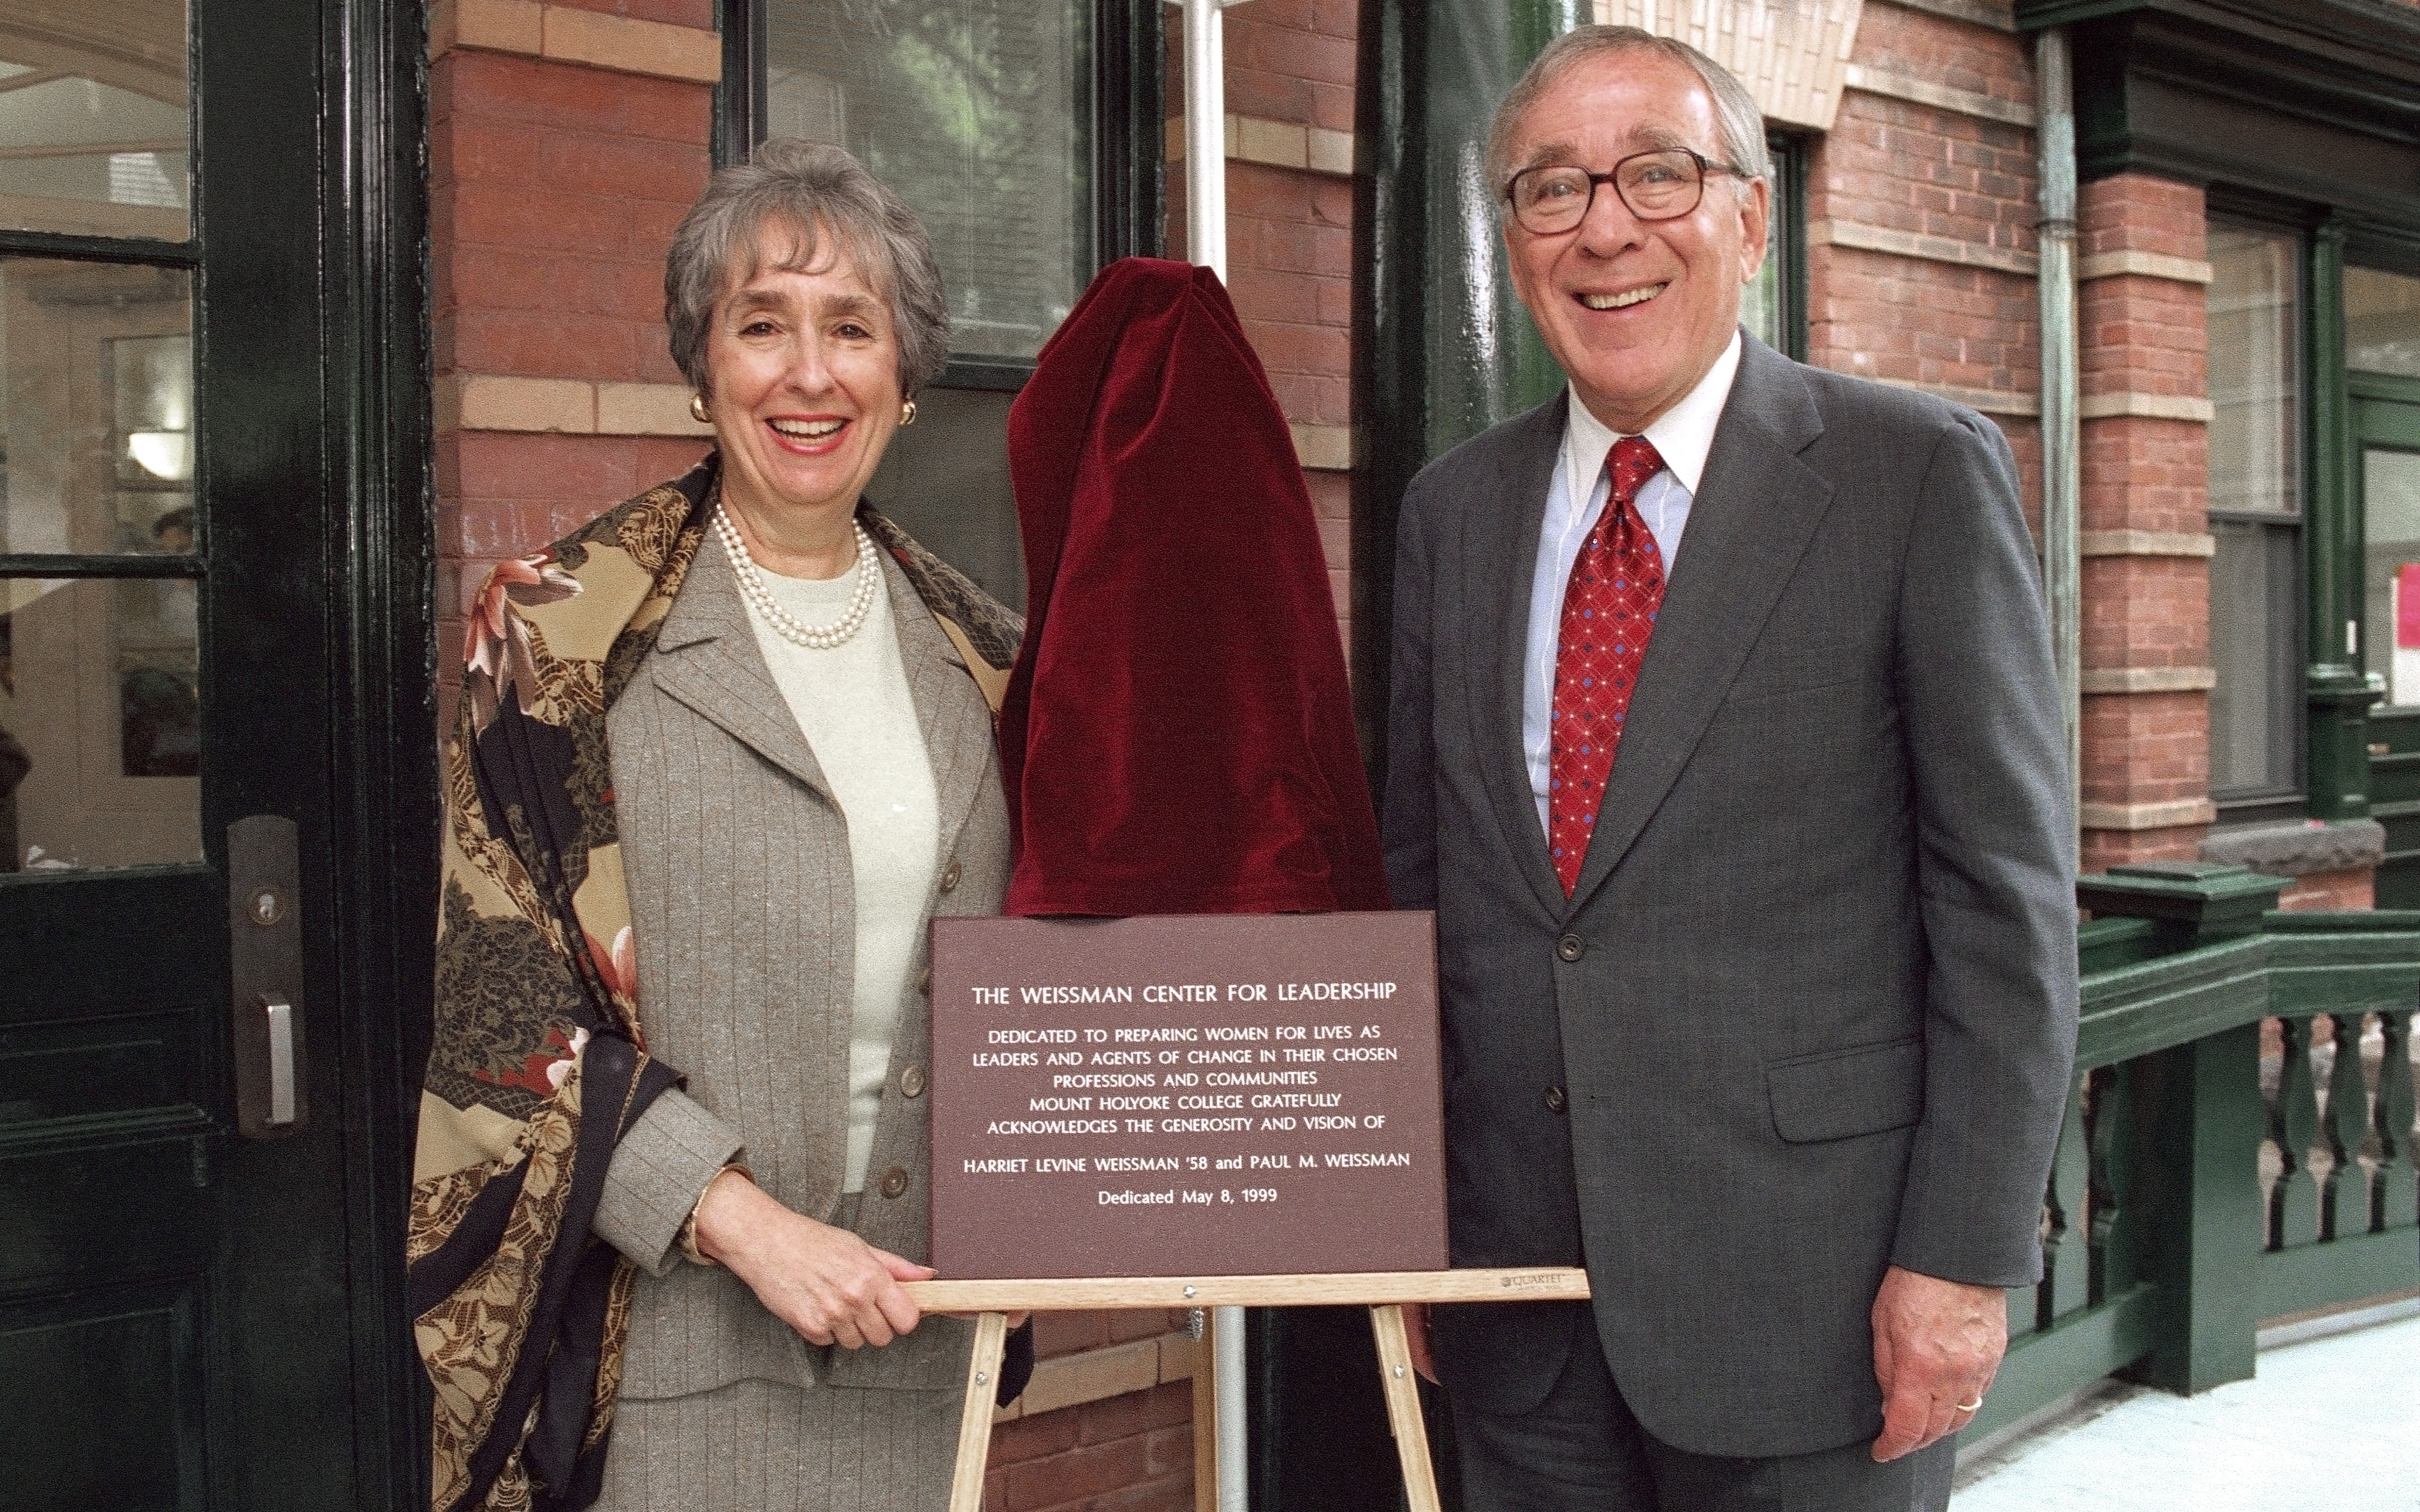 Harriet and Paul Weissman at the dedication